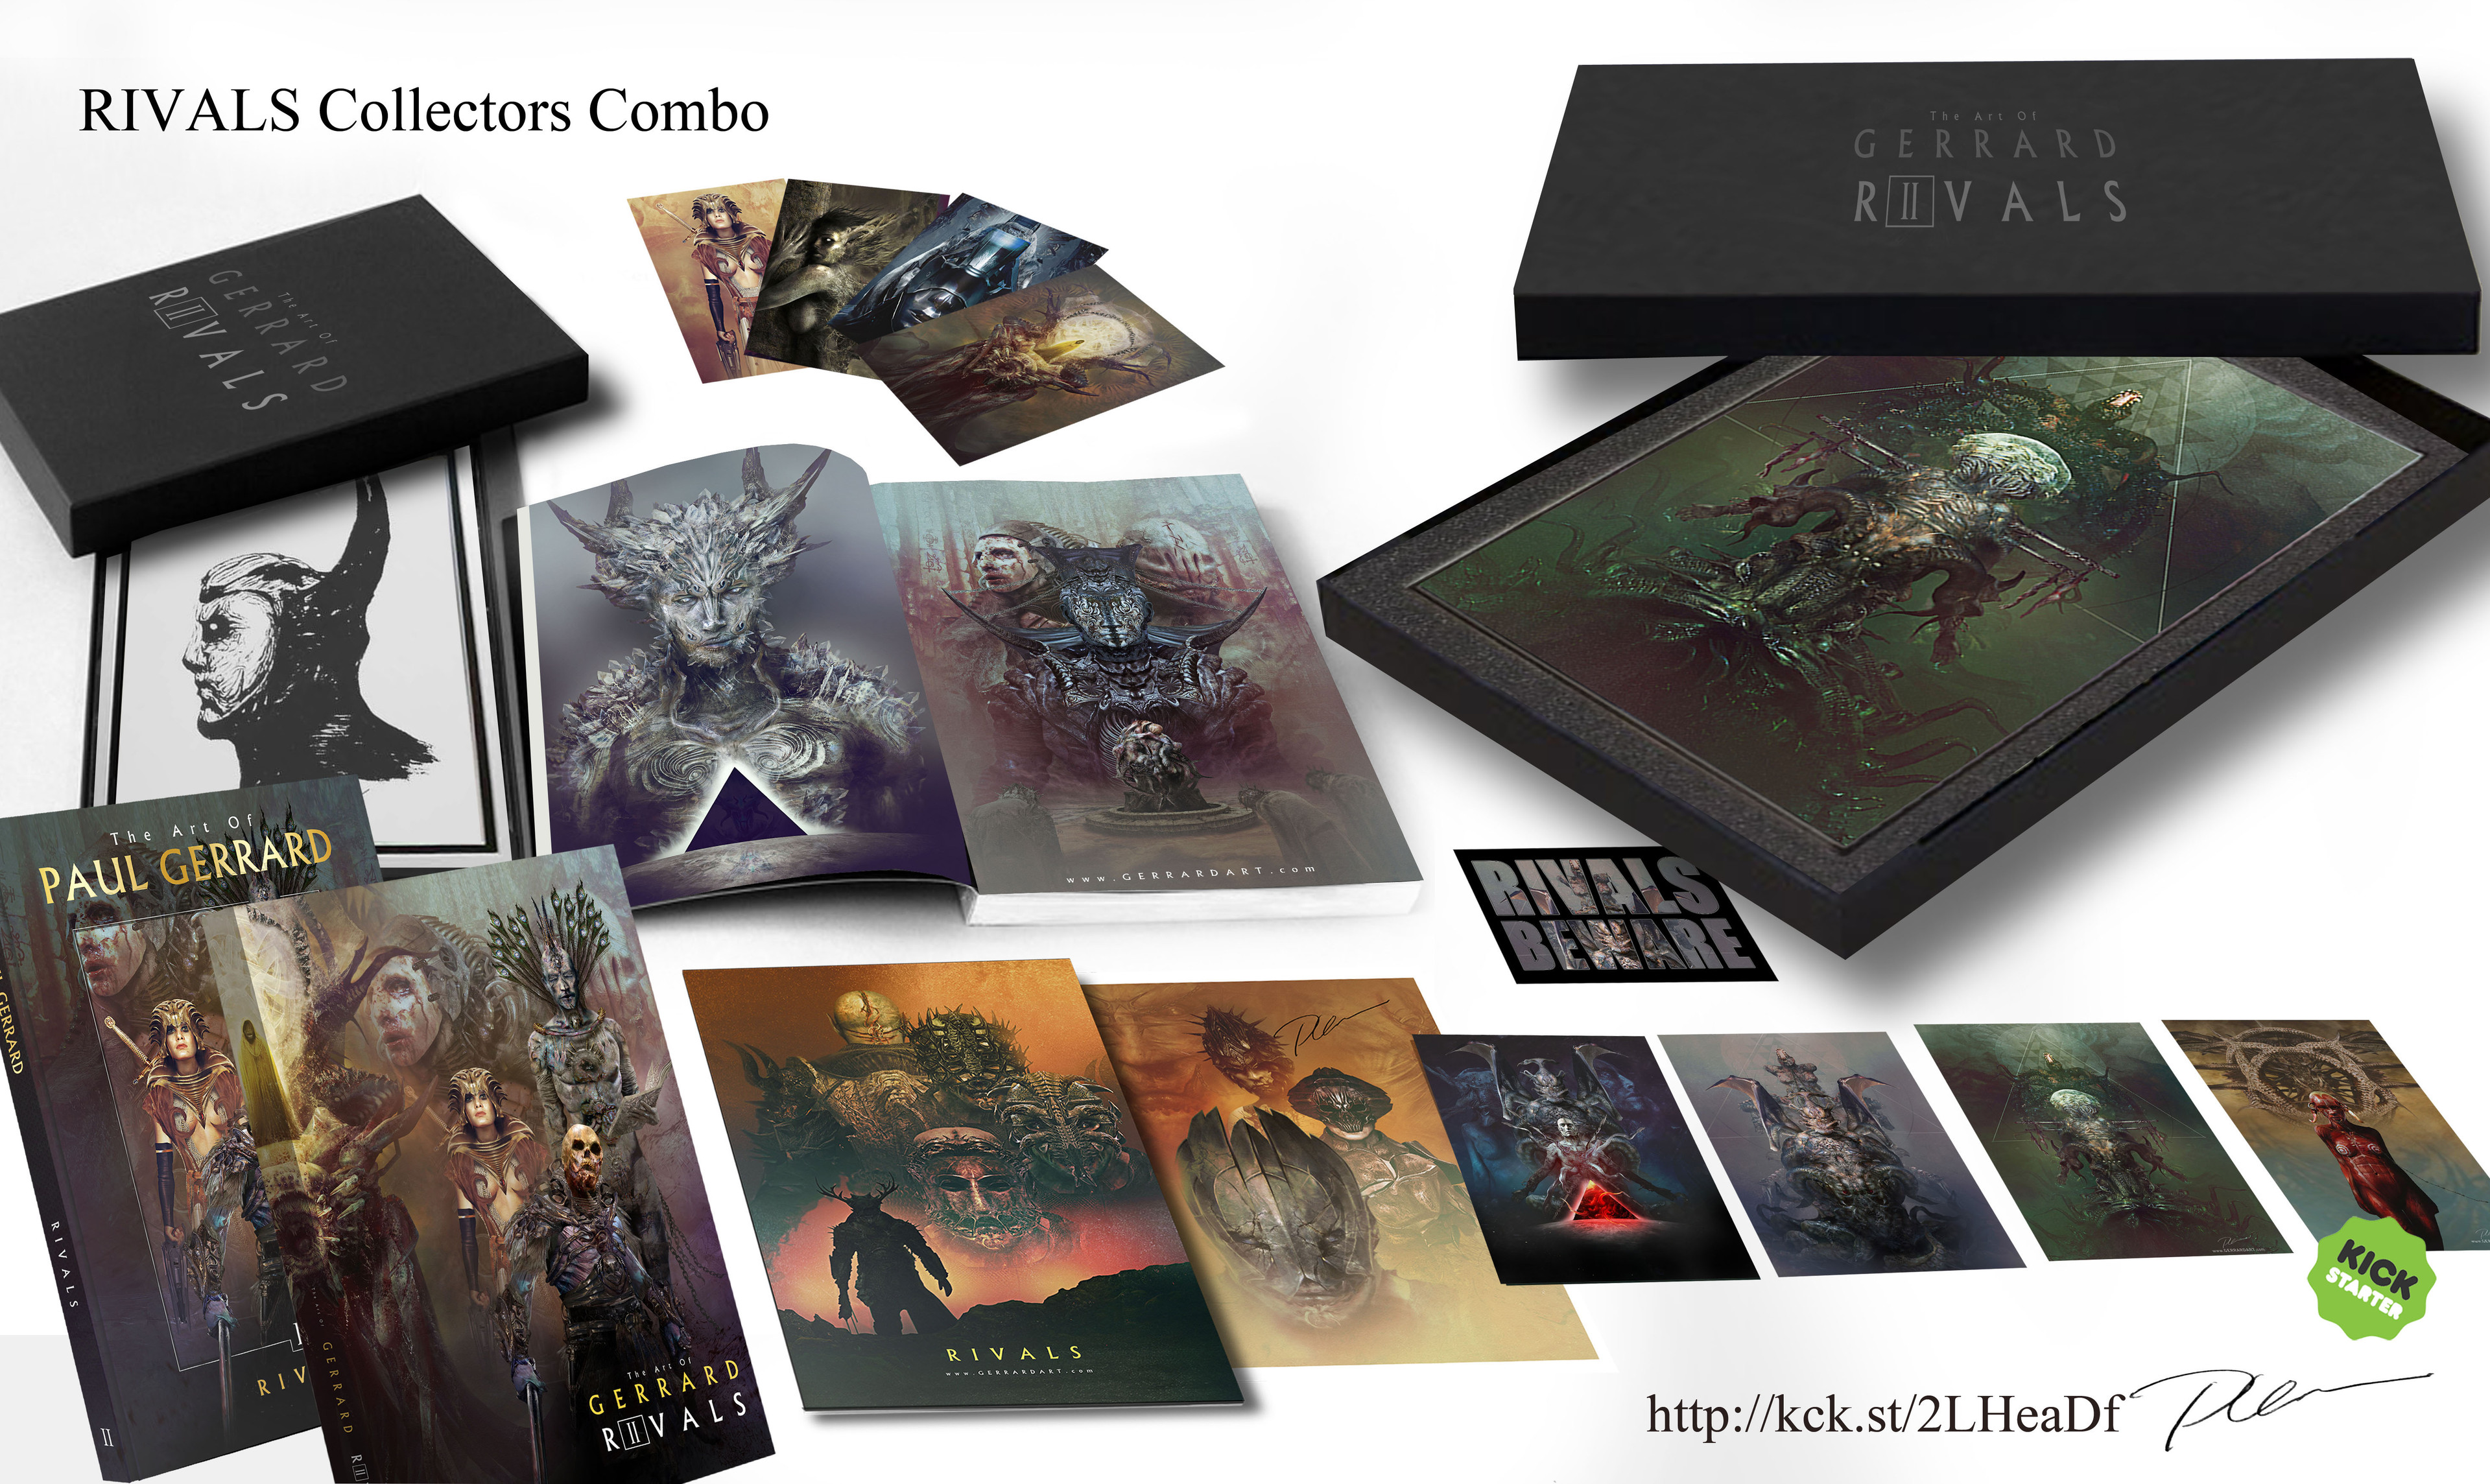 THE COLLECTORS COMBO Edition. http://kck.st/2LHeaDf